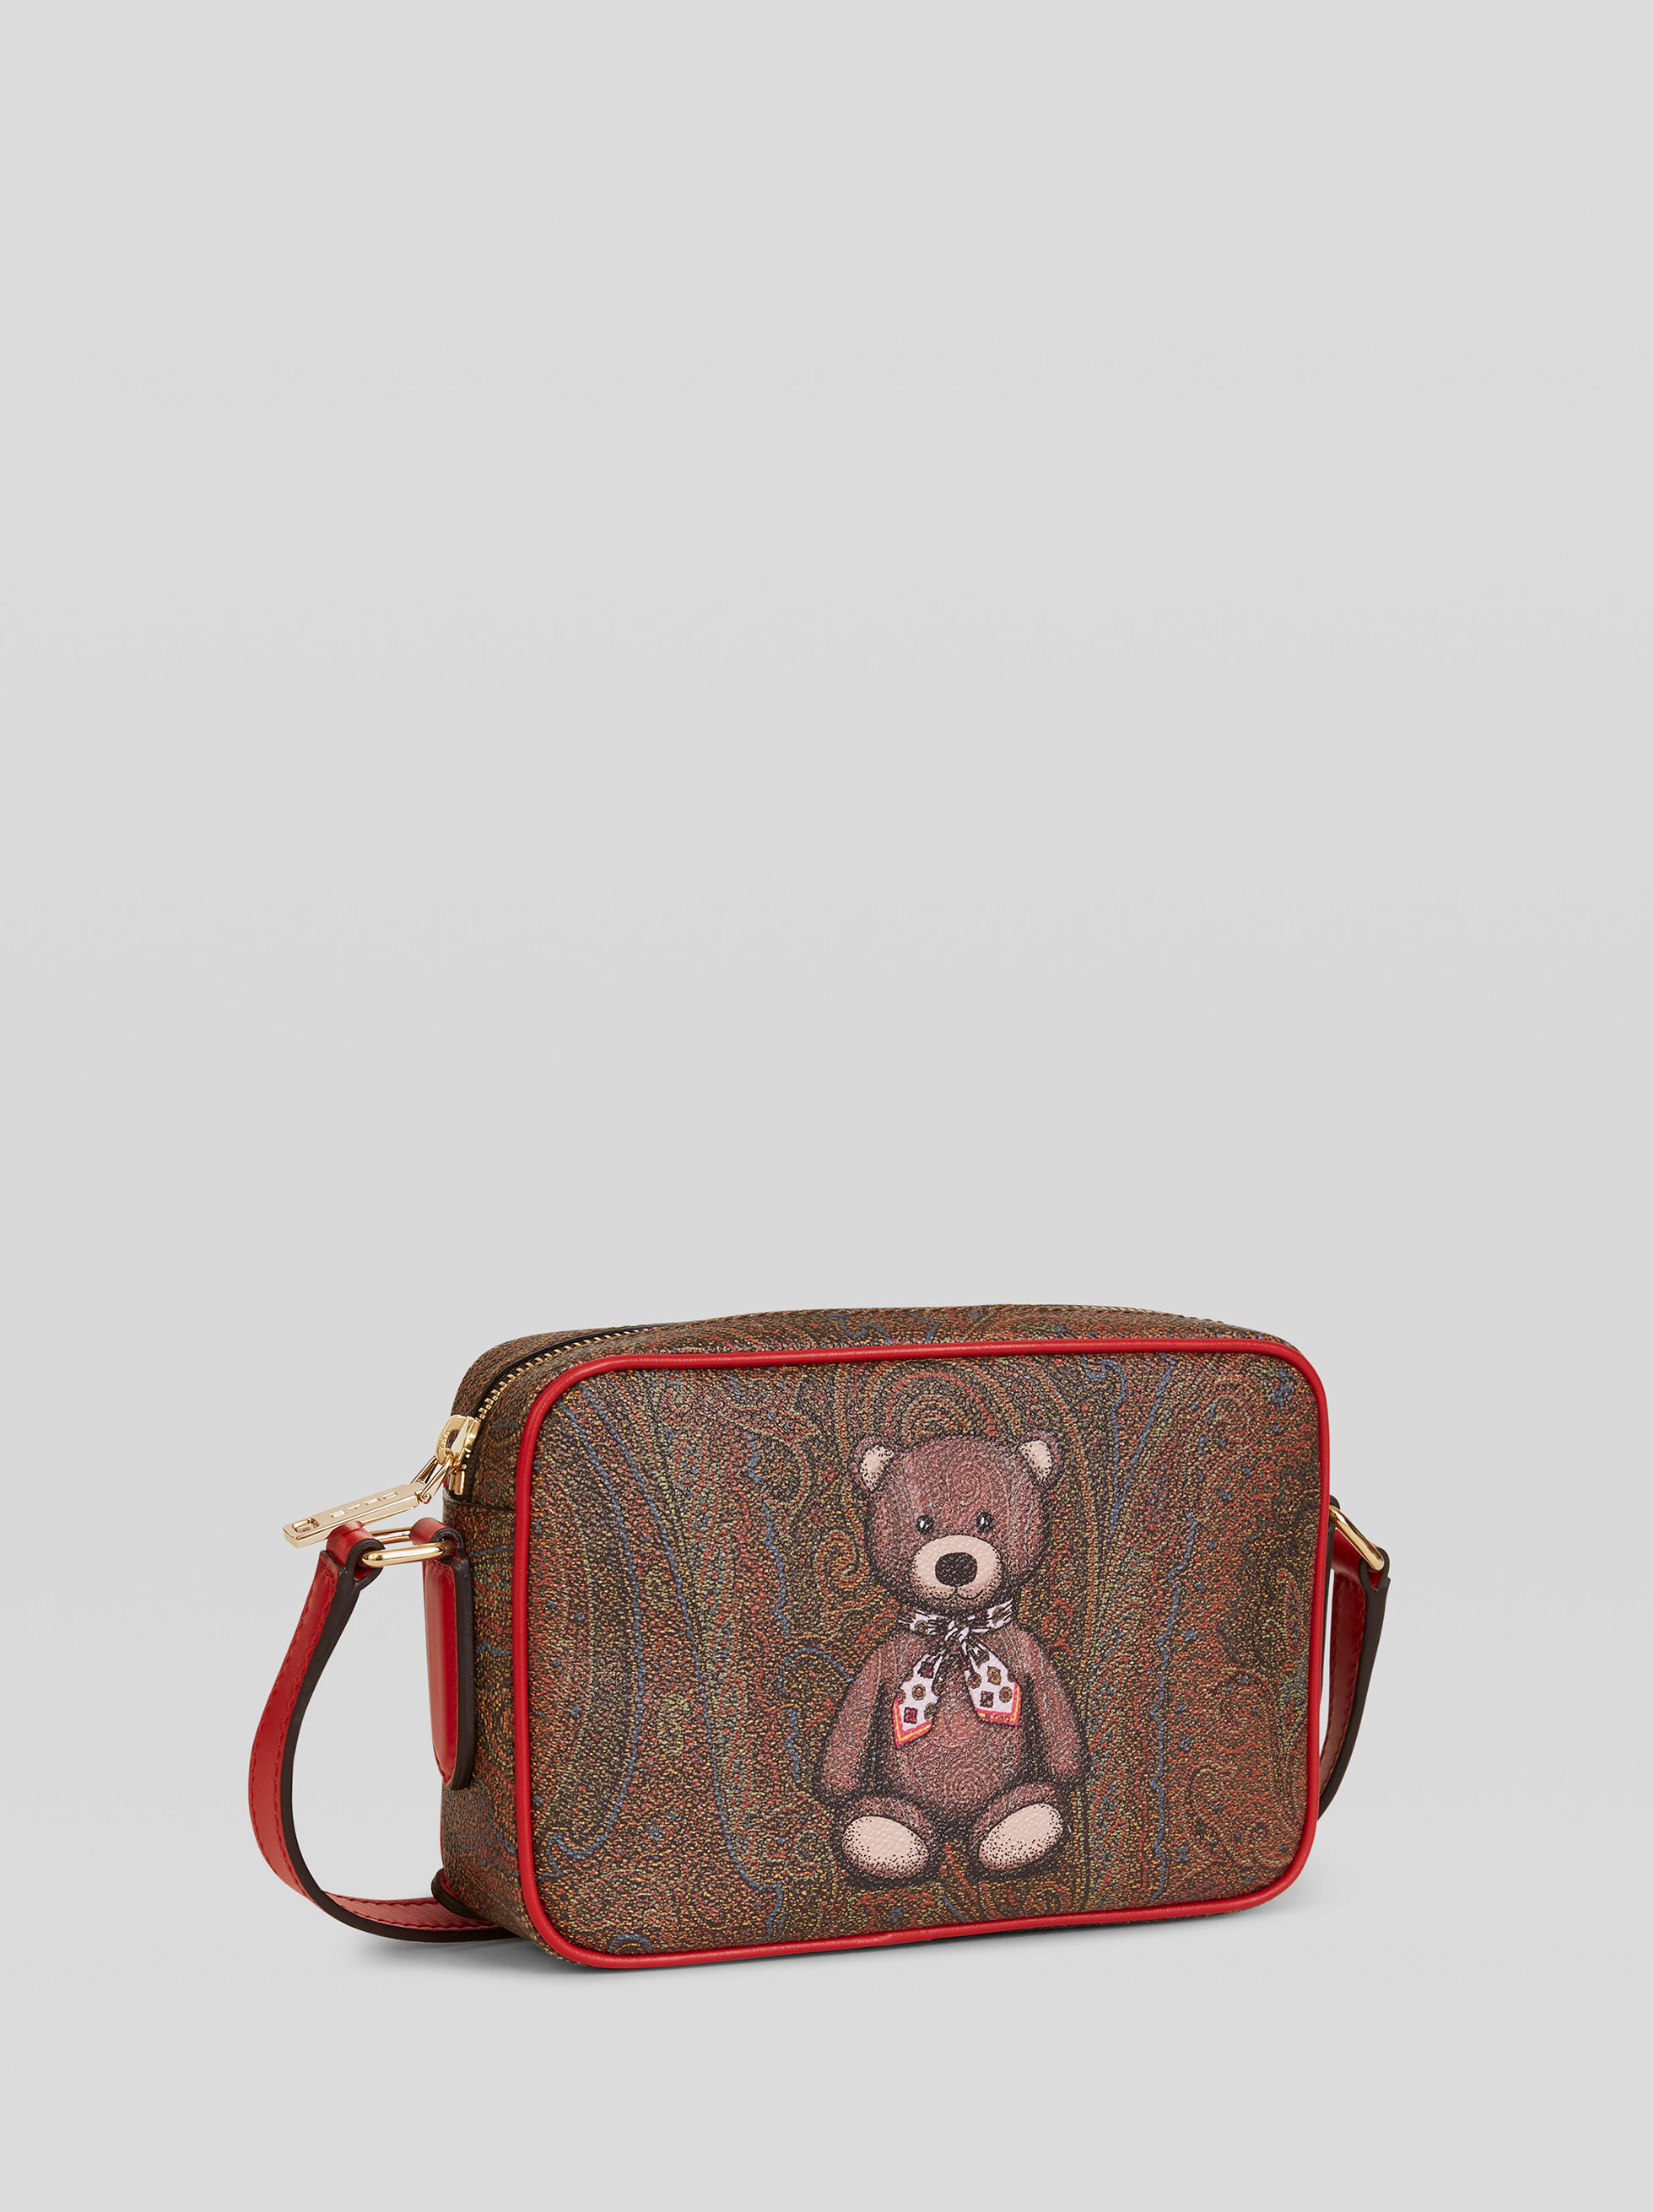 PAISLEY WITH TEDDY BEAR SHOULDER BAG